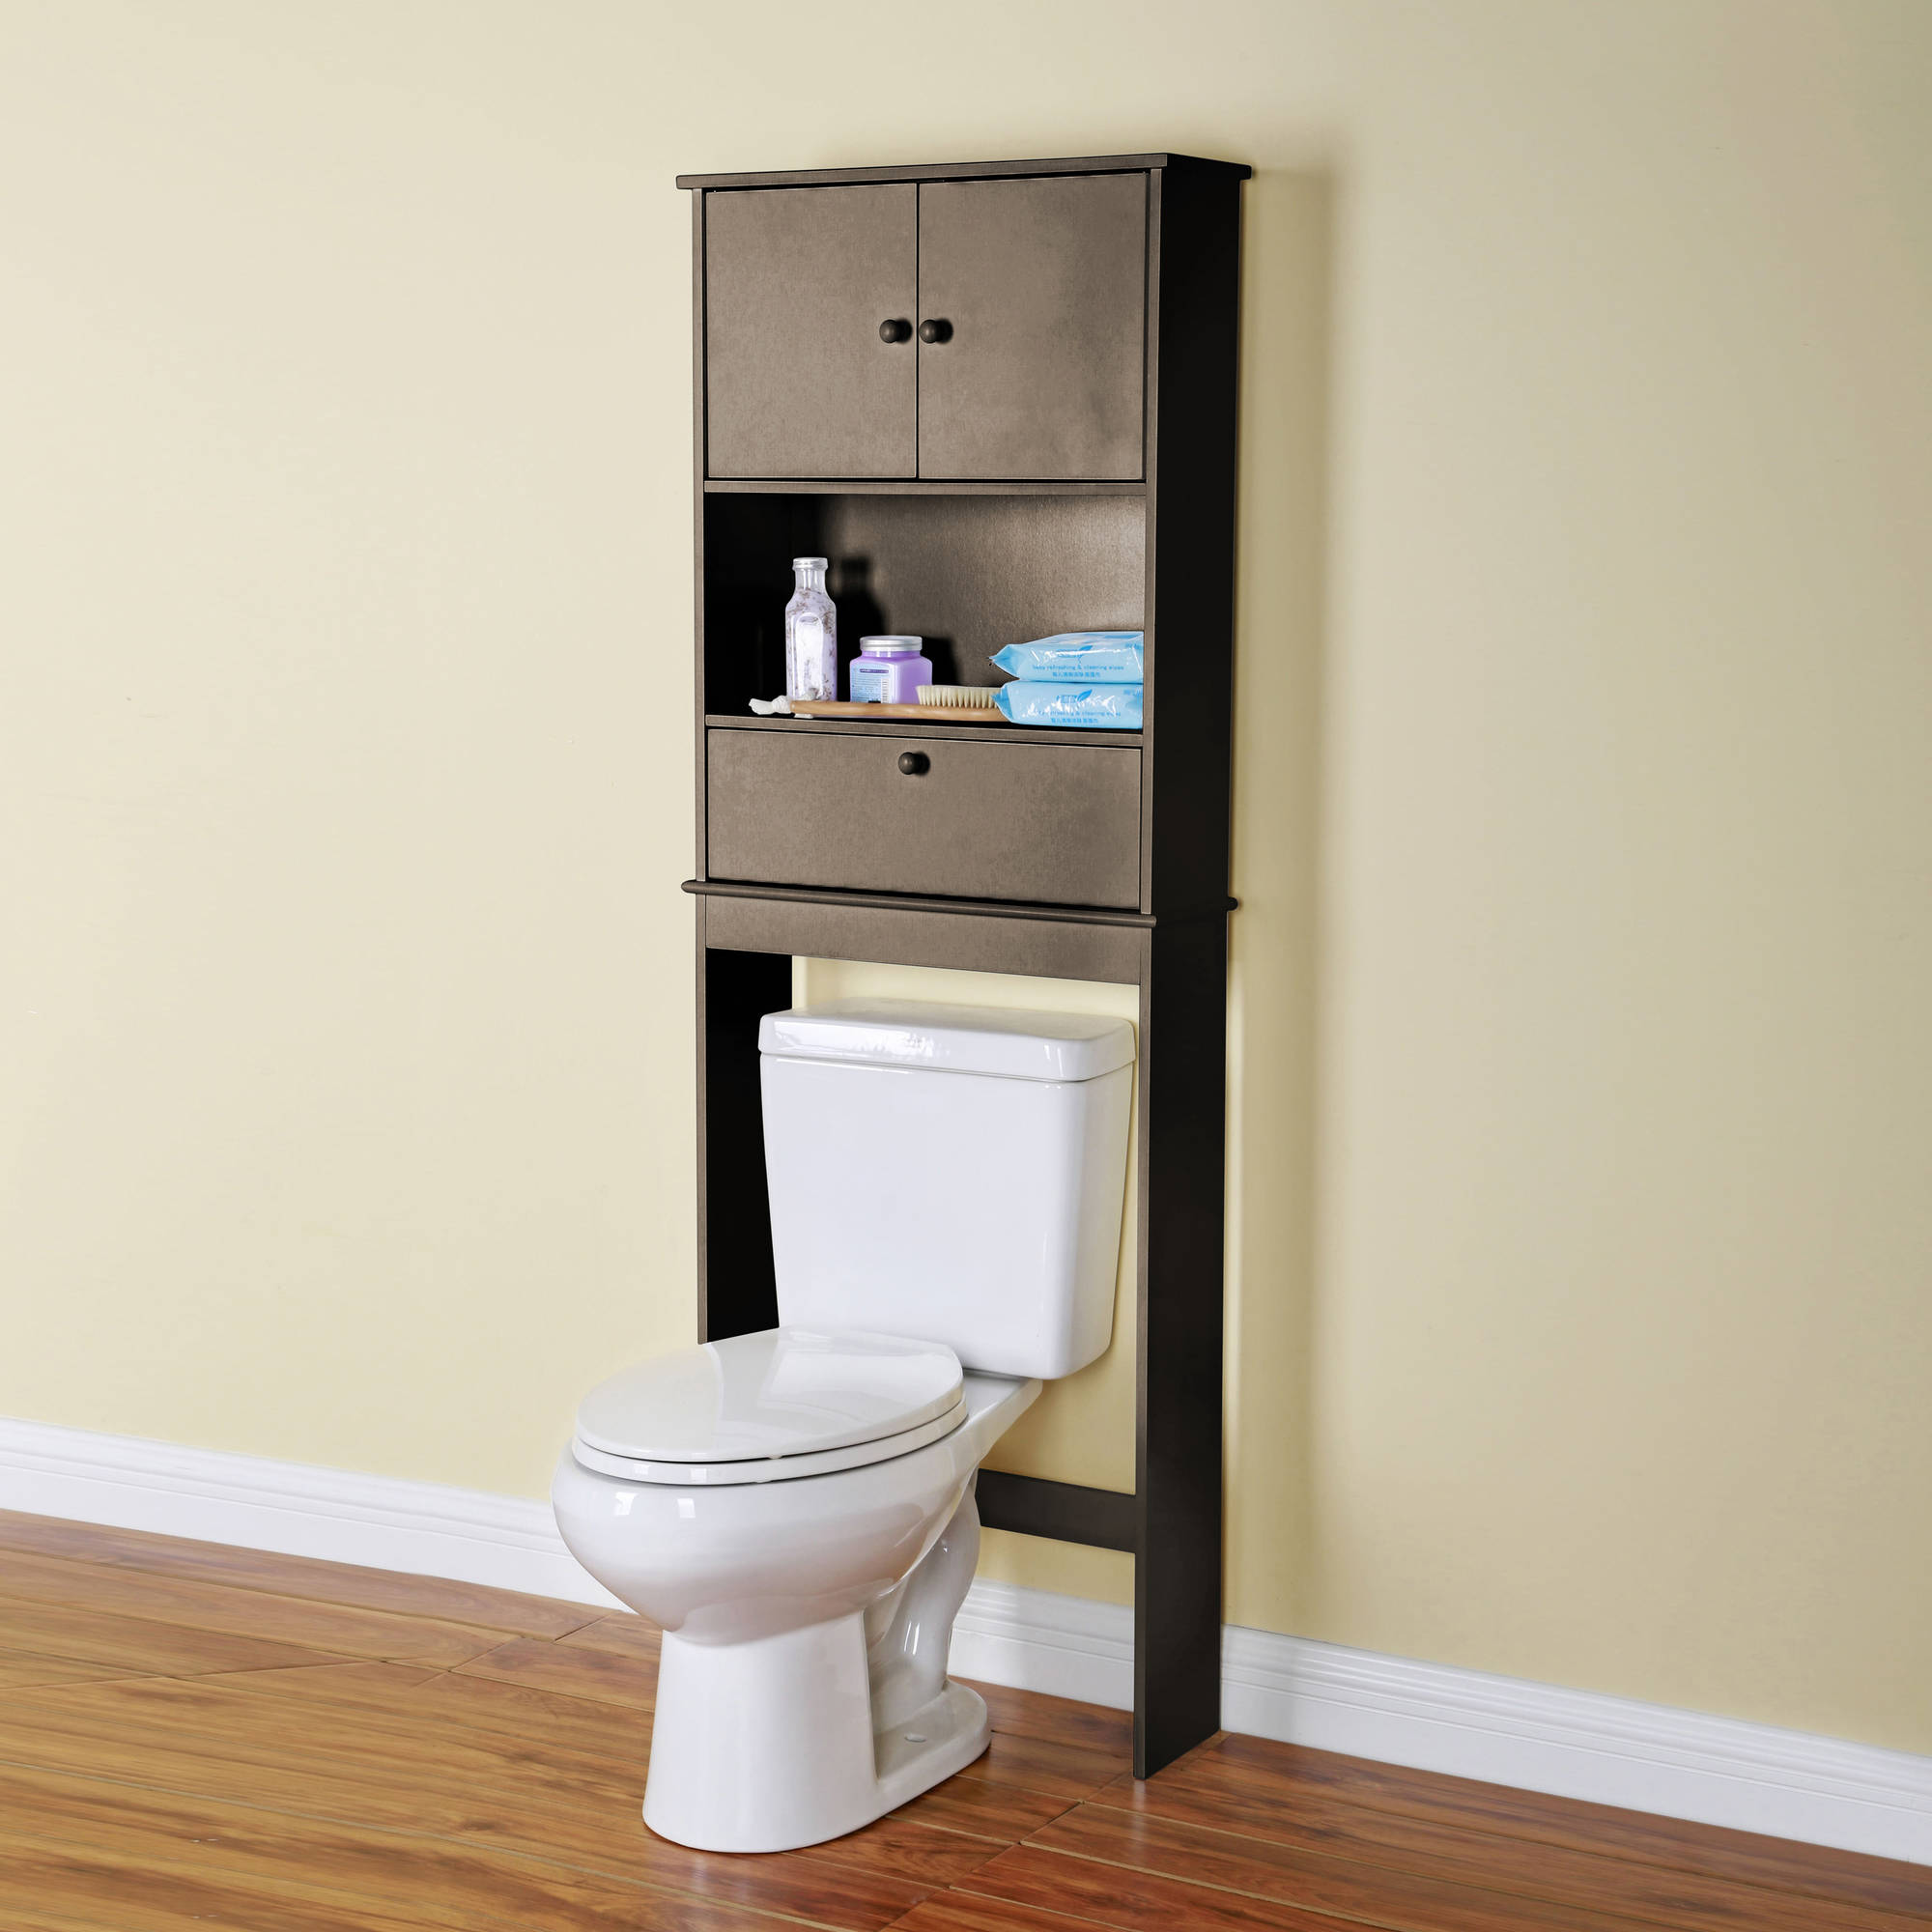 mainstays bathroom wall cabinet the toilet space saver shelf espresso walmart 19379